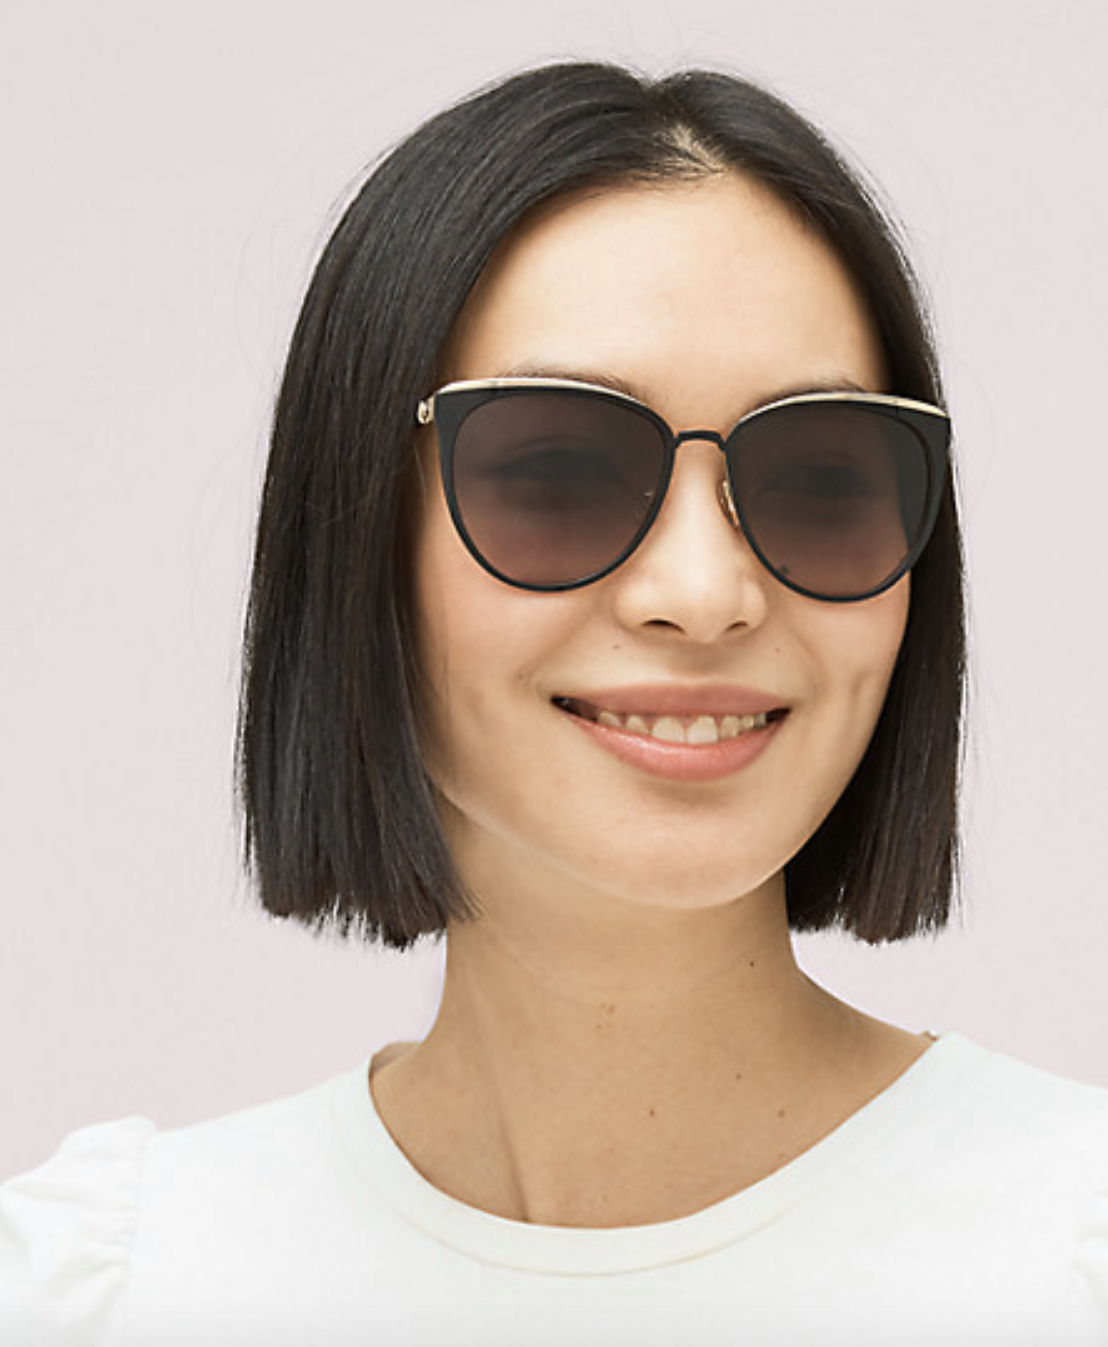 Model wearing the sunglasses